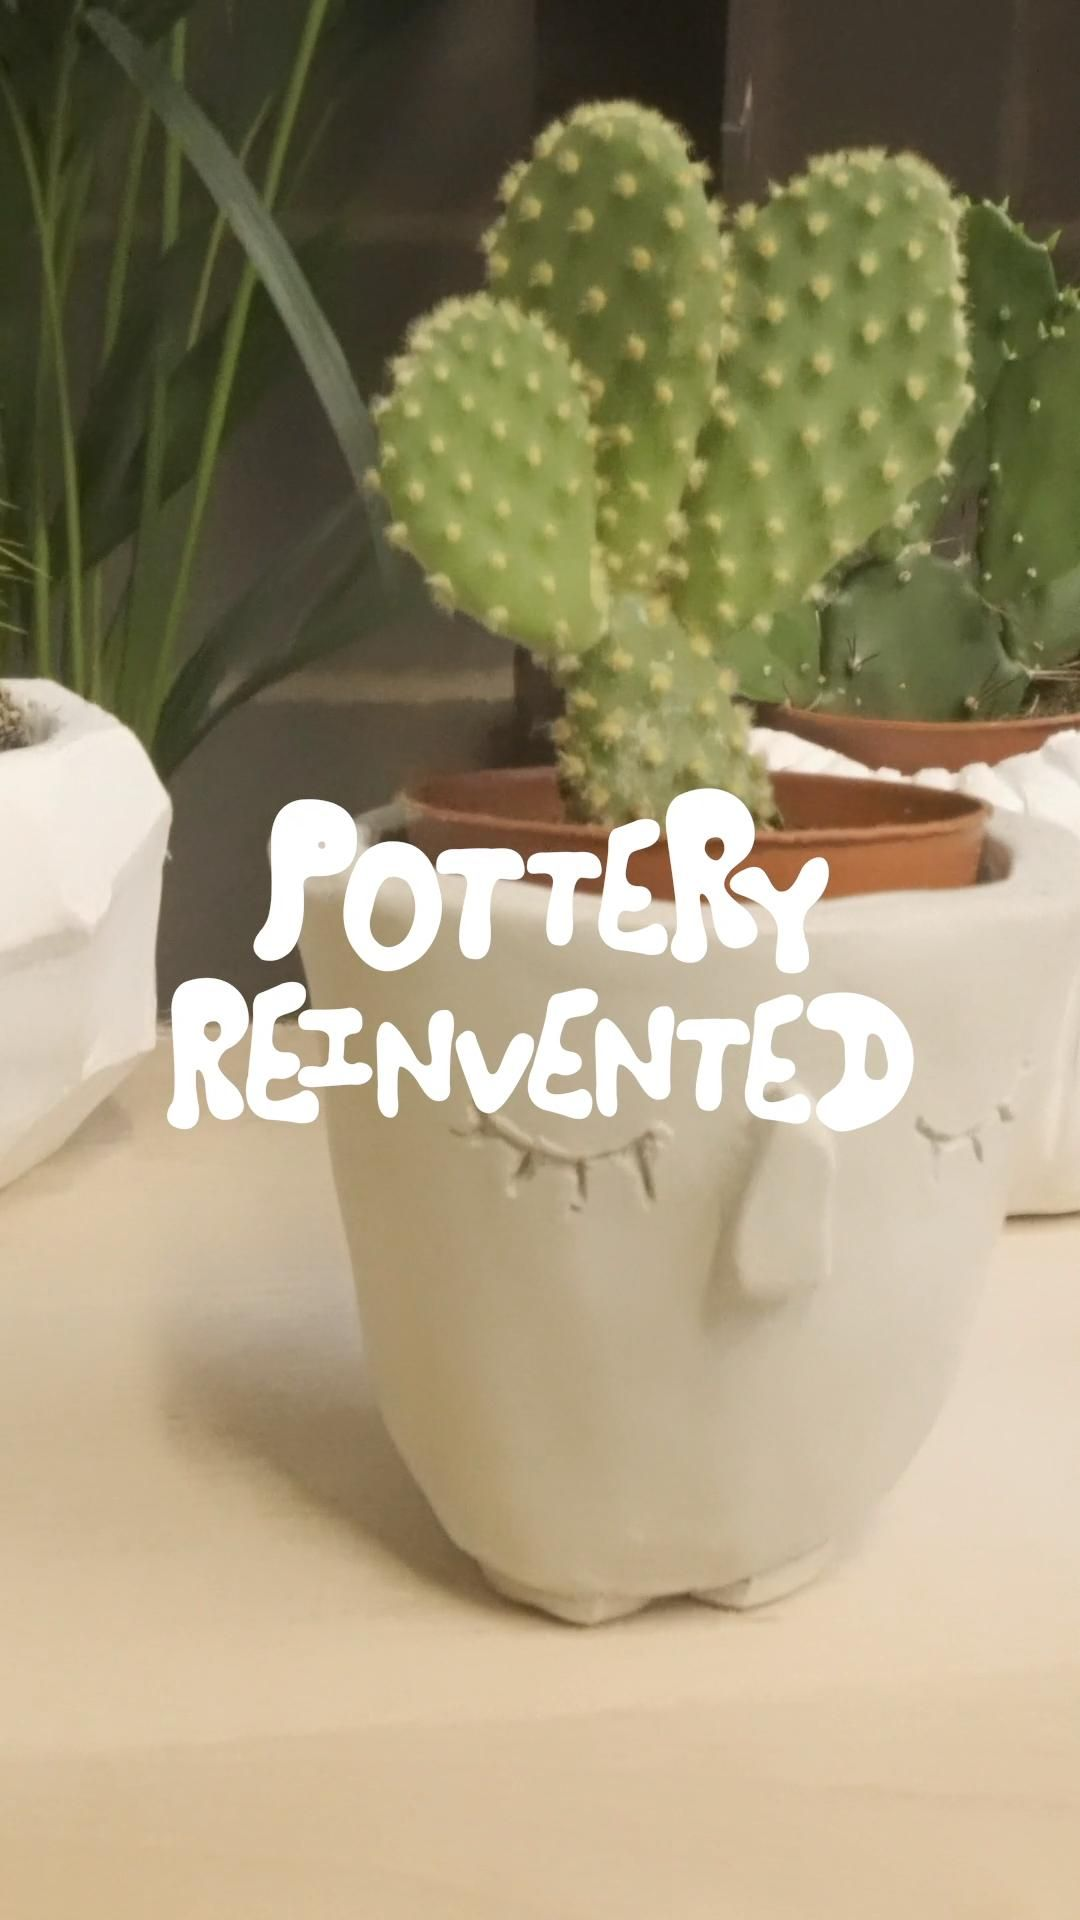 The Home Pottery Kit You've Been Waiting For